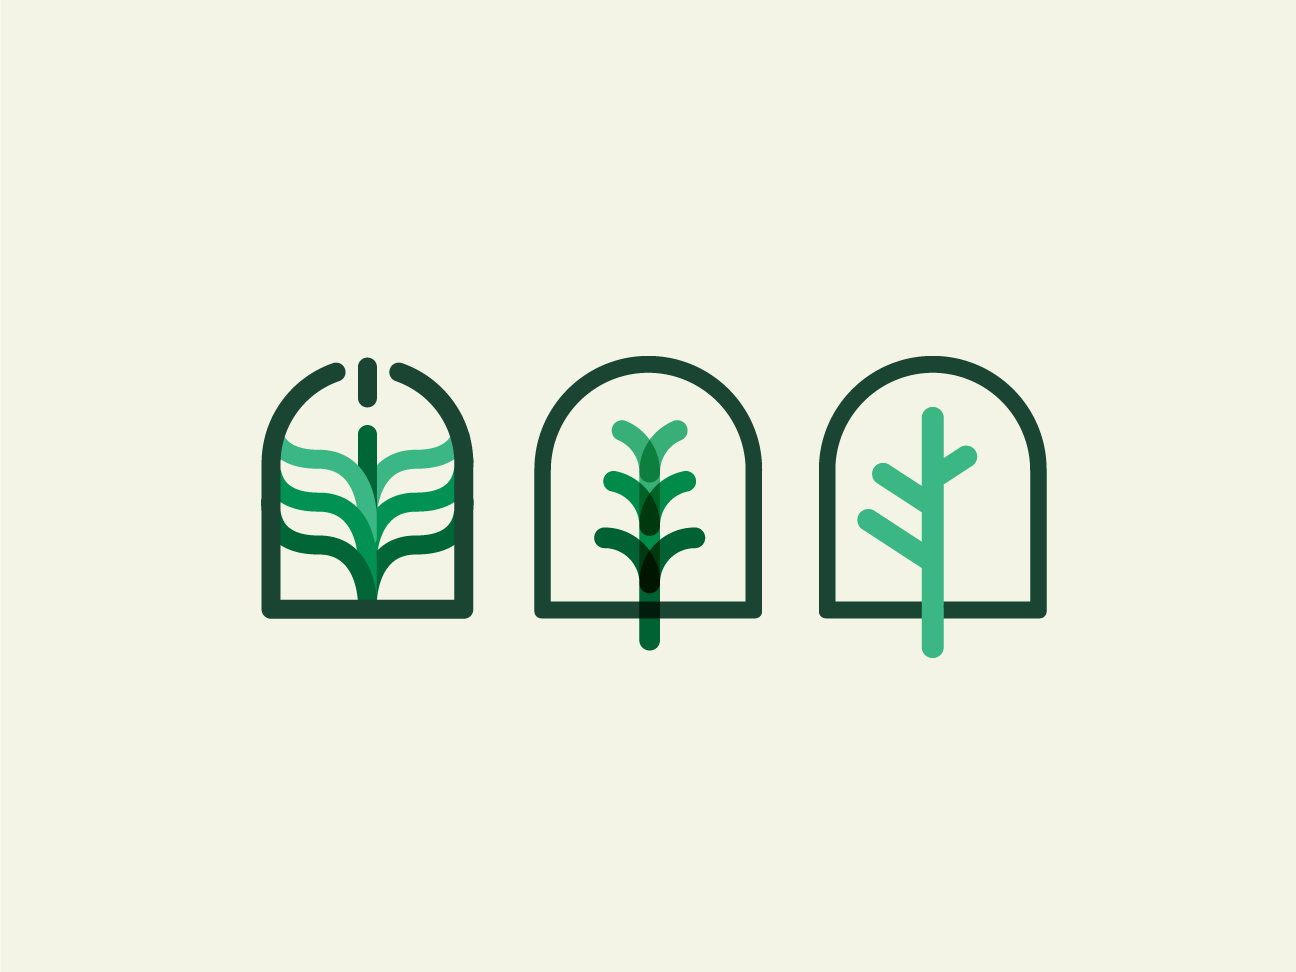 Test 2 - Logotype health nature green leafs leaf icon branding vector design brand logo design logotype logo